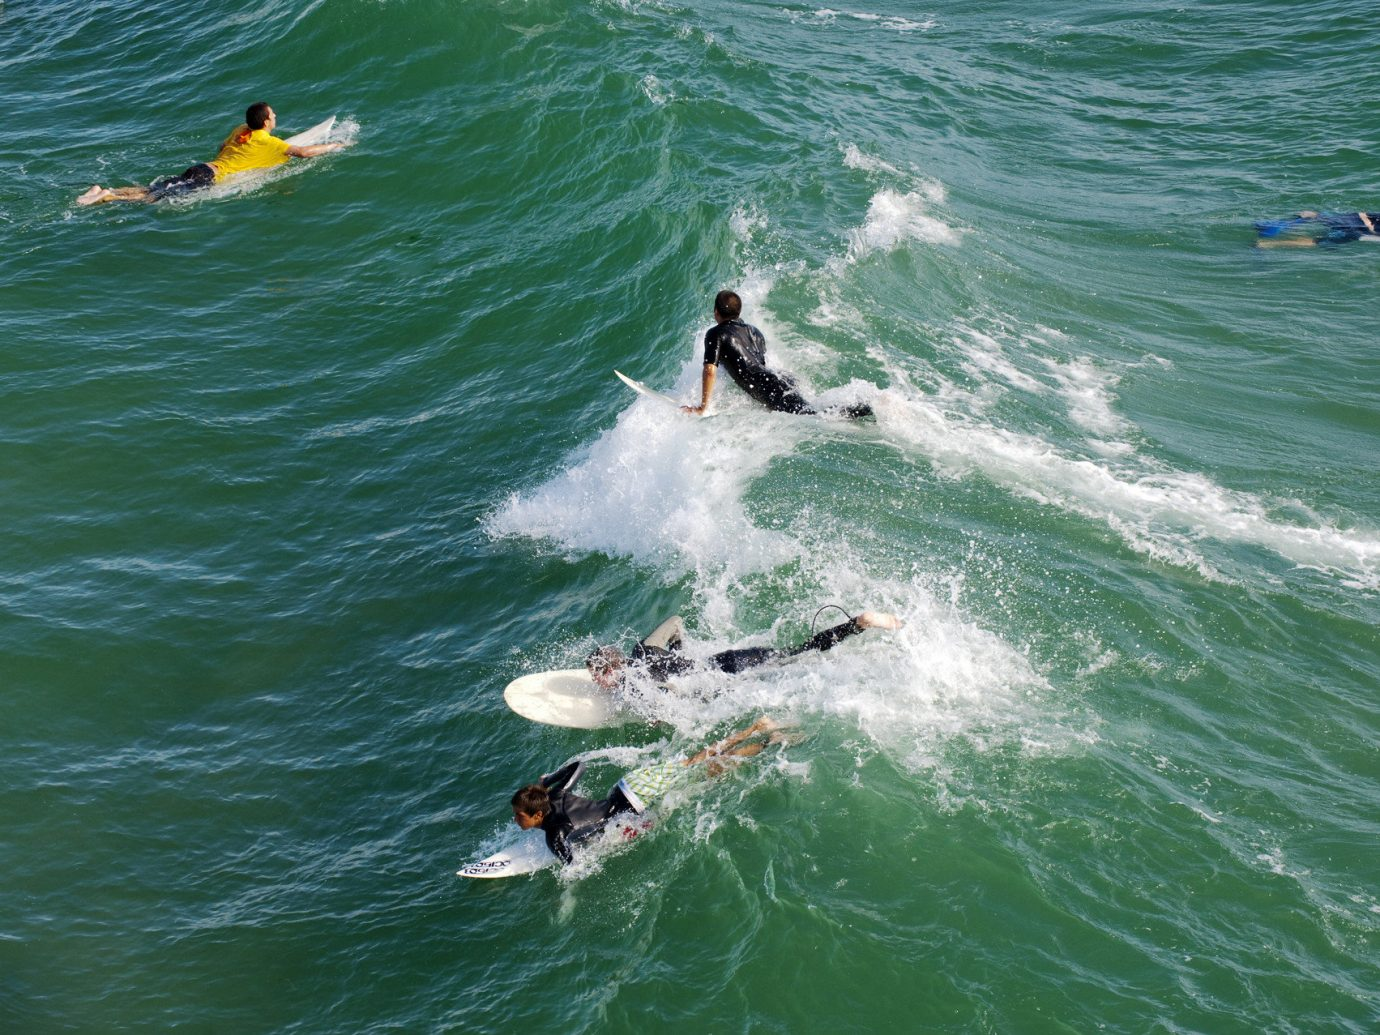 Ocean Outdoor Activities Sport surfing Trip Ideas water water sport outdoor riding wave sports bodyboarding boardsport wind wave surface water sports Sea surfboard extreme sport surfing equipment and supplies individual sports swimming colored